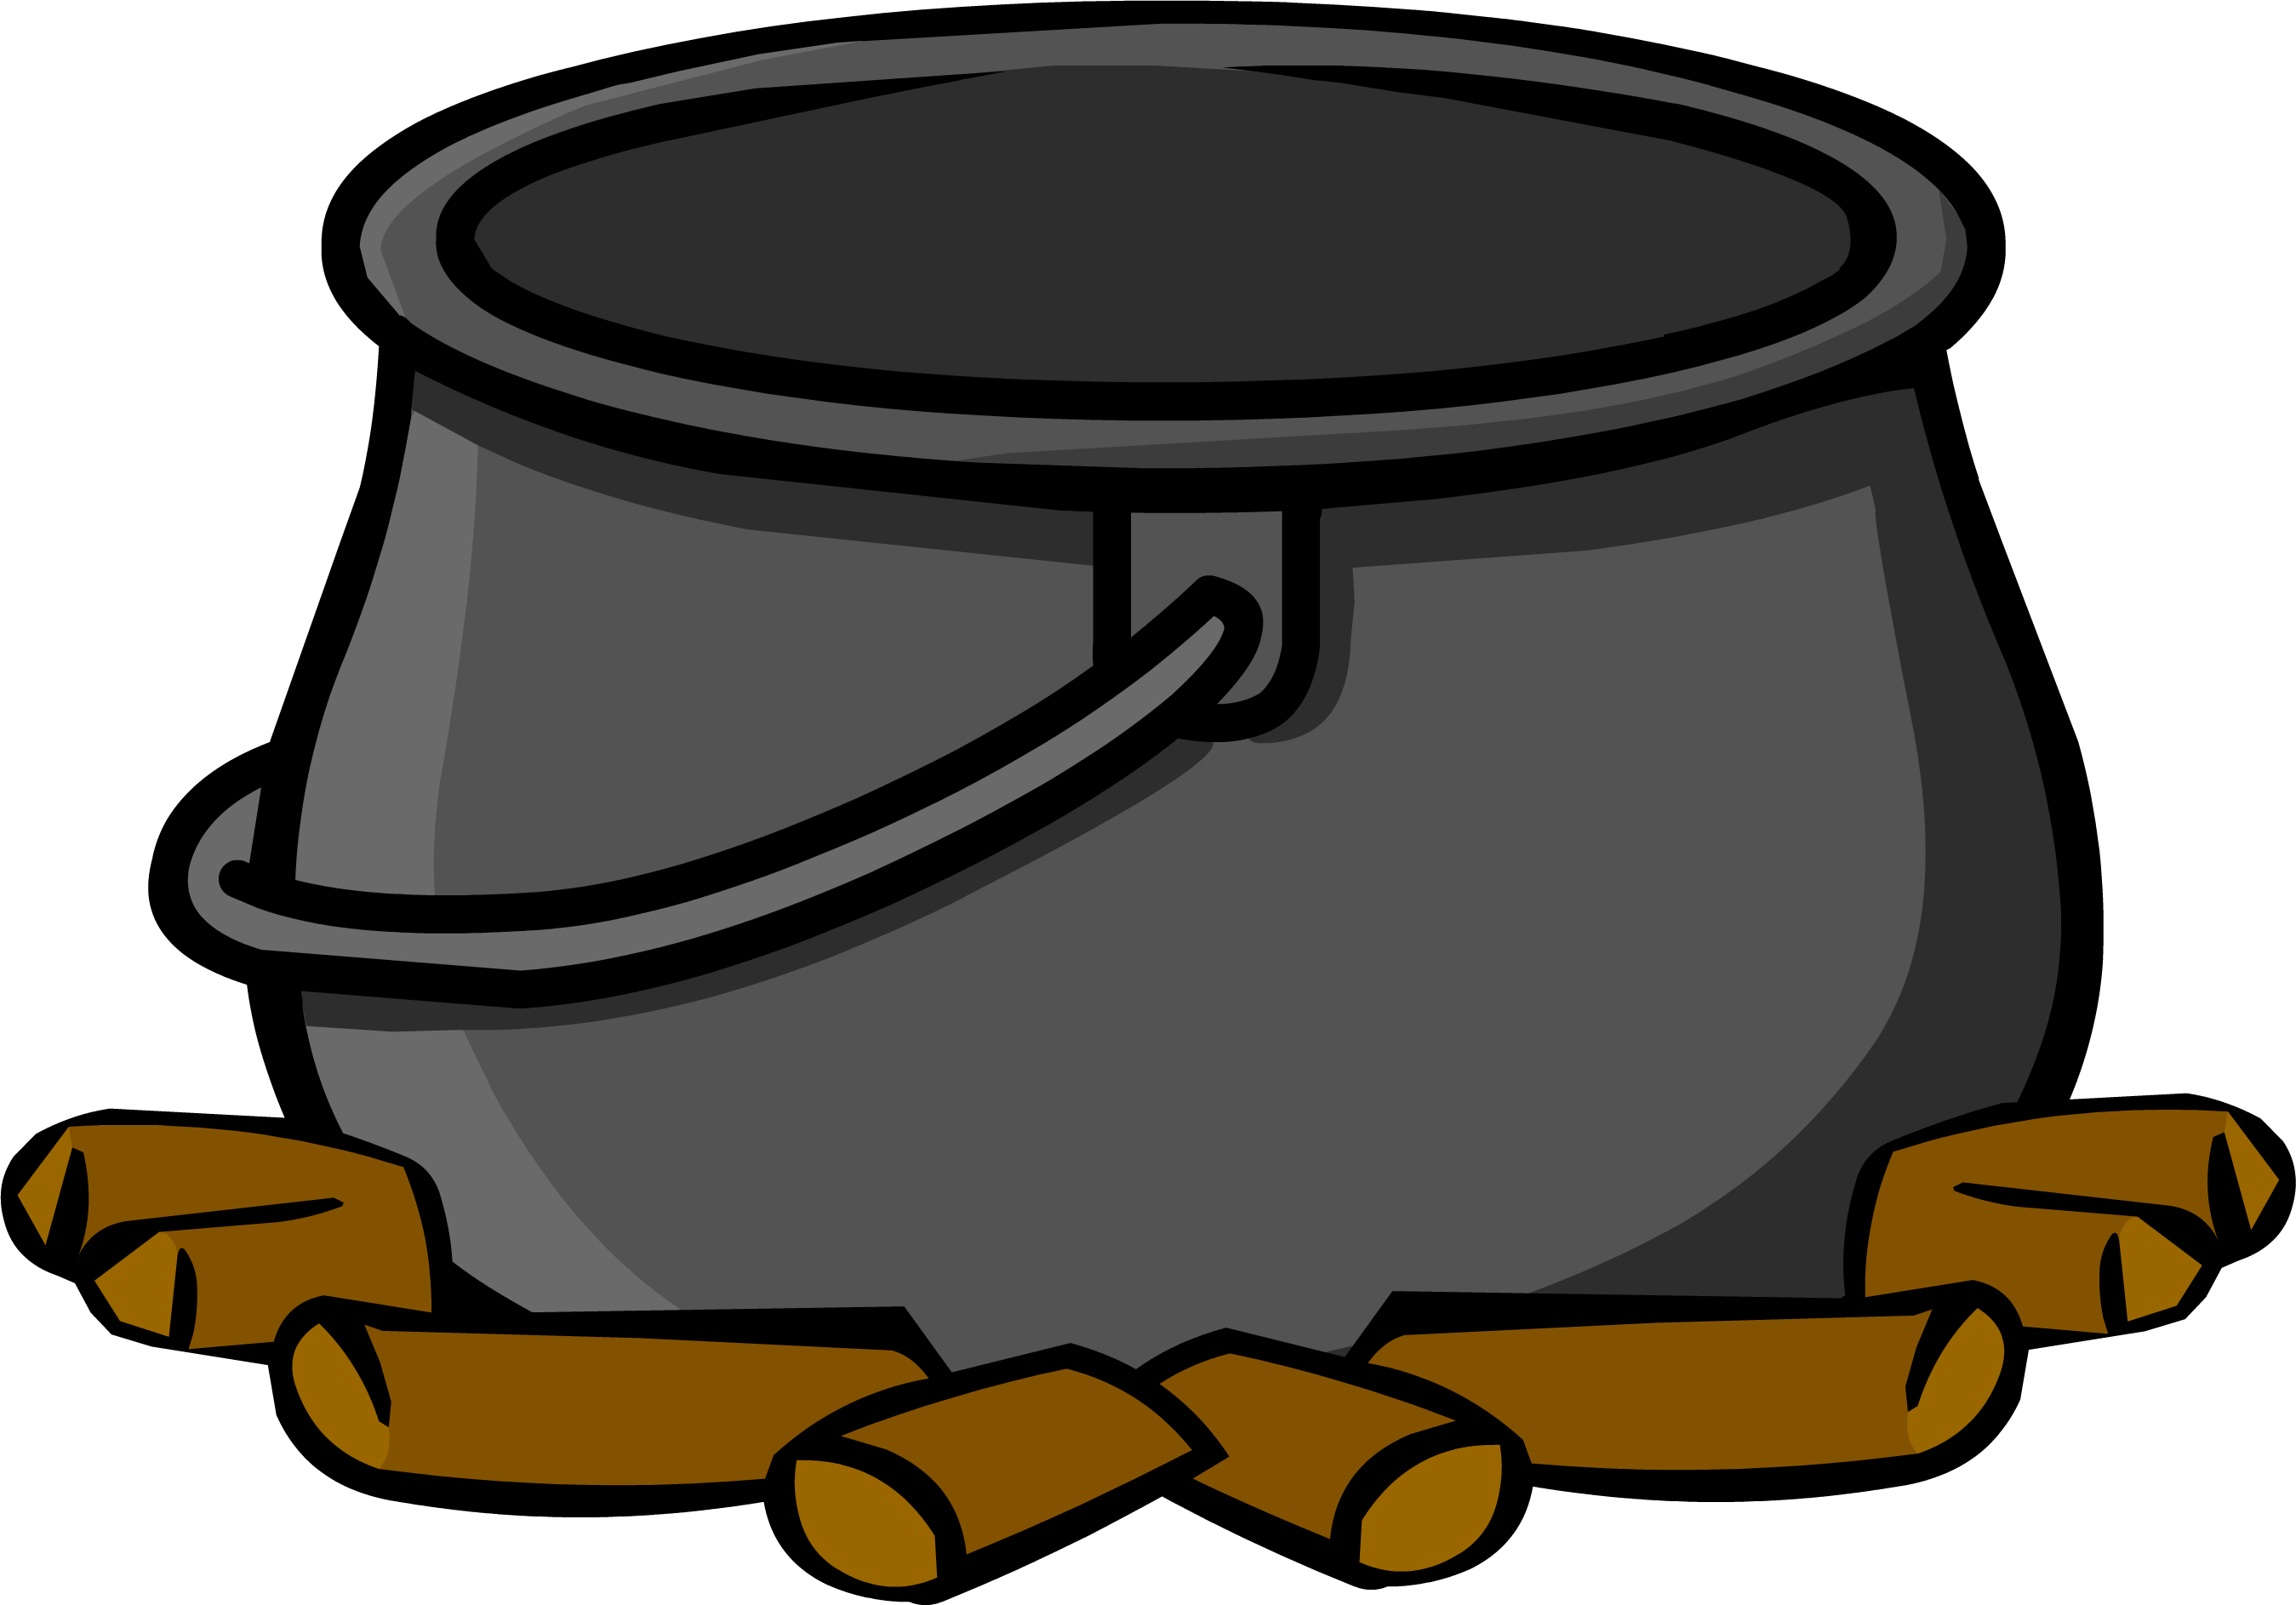 Cauldron vector gothic. Collection of free caldron